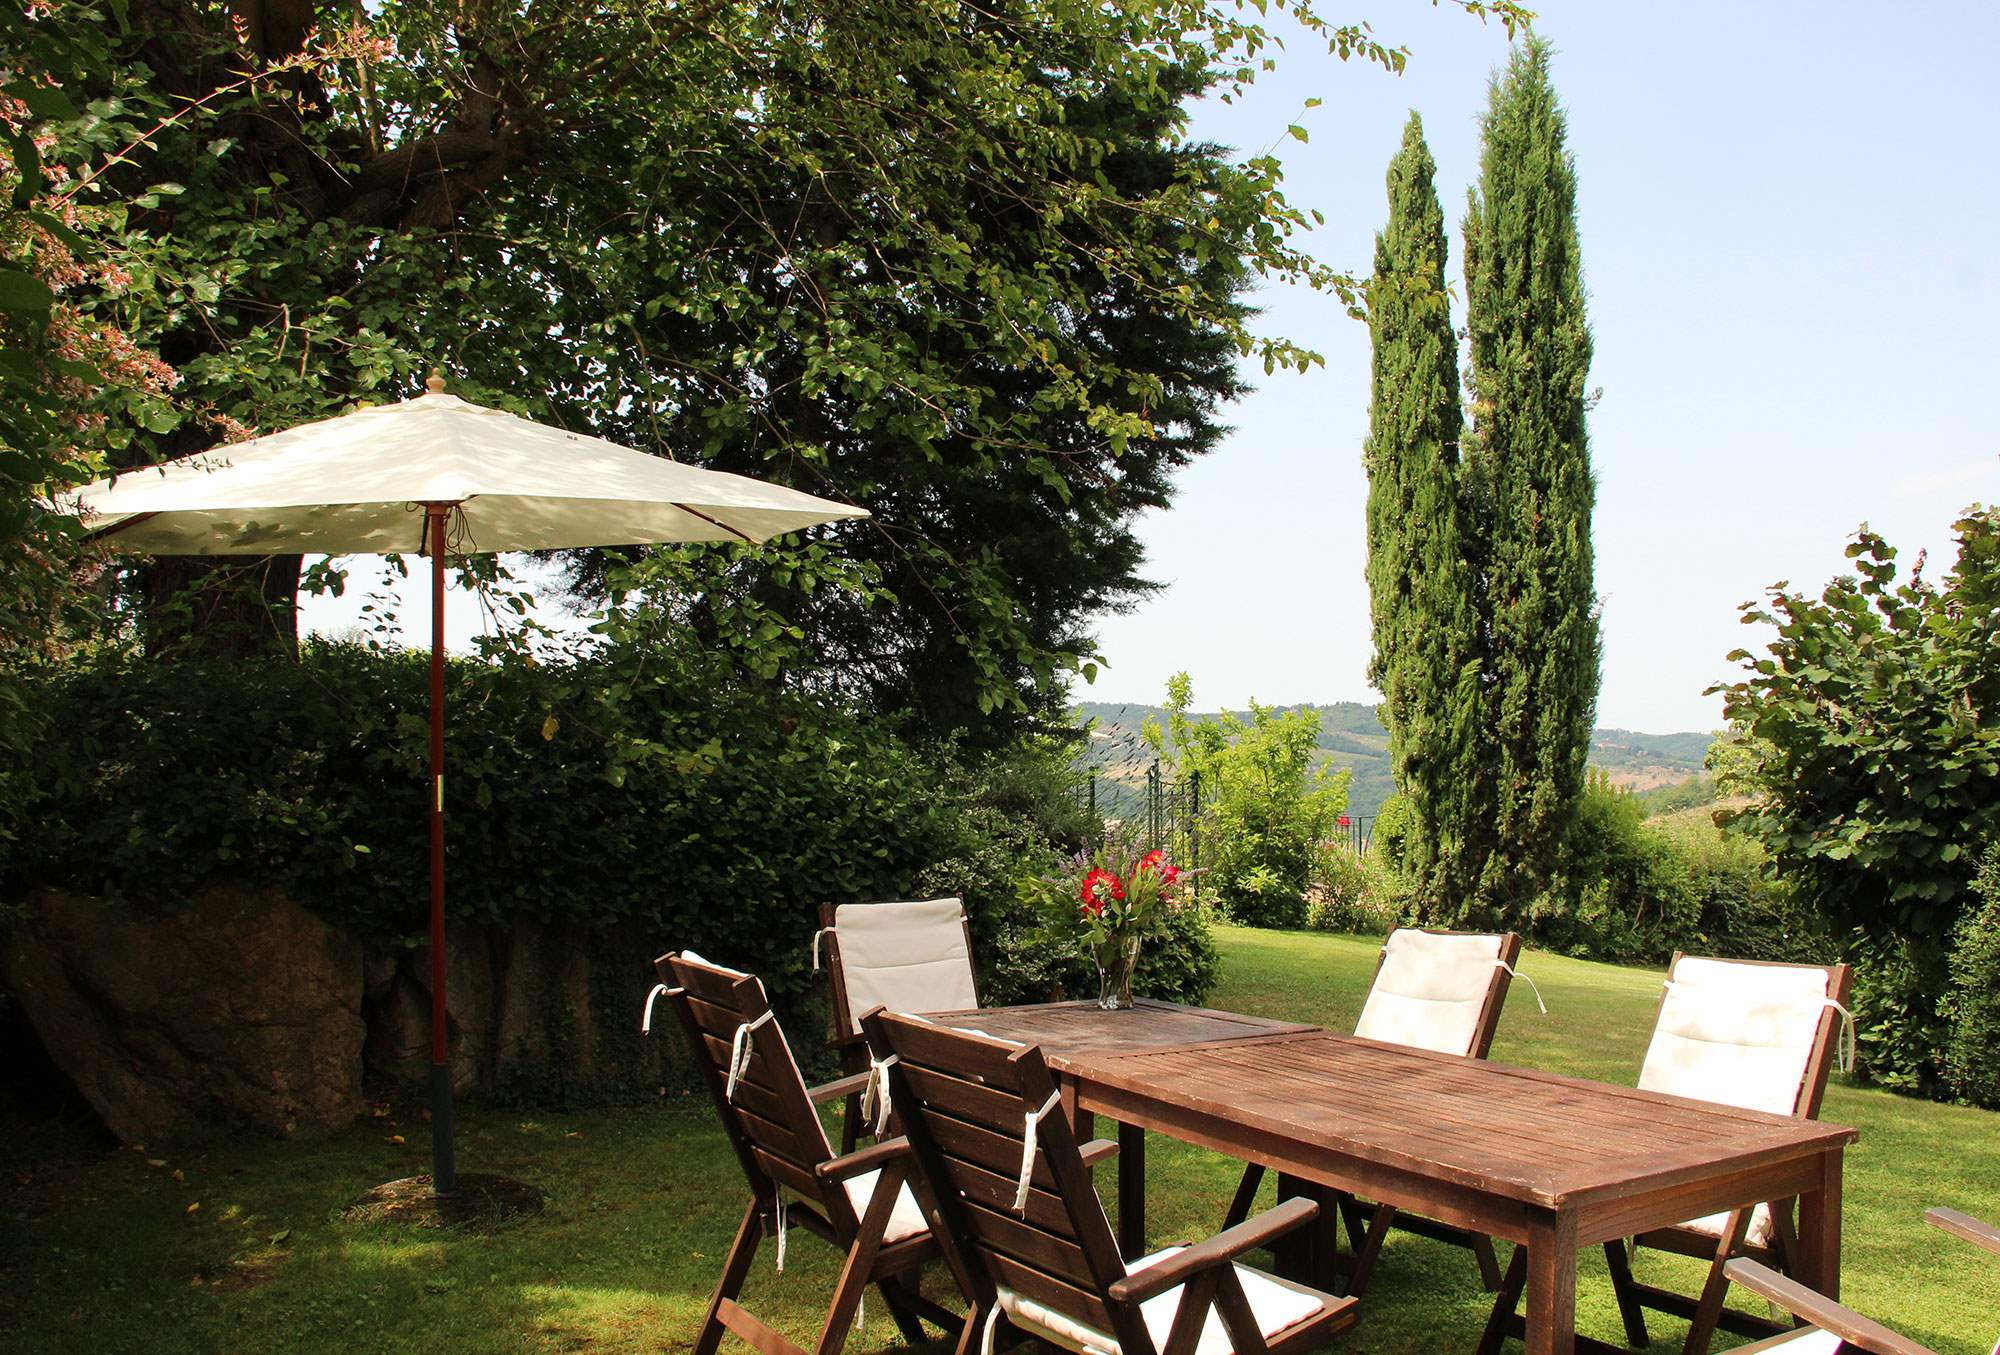 Casas Ferruzzi, 8 bedroom apartment in Chianti & Countryside, Tuscany Photo #12